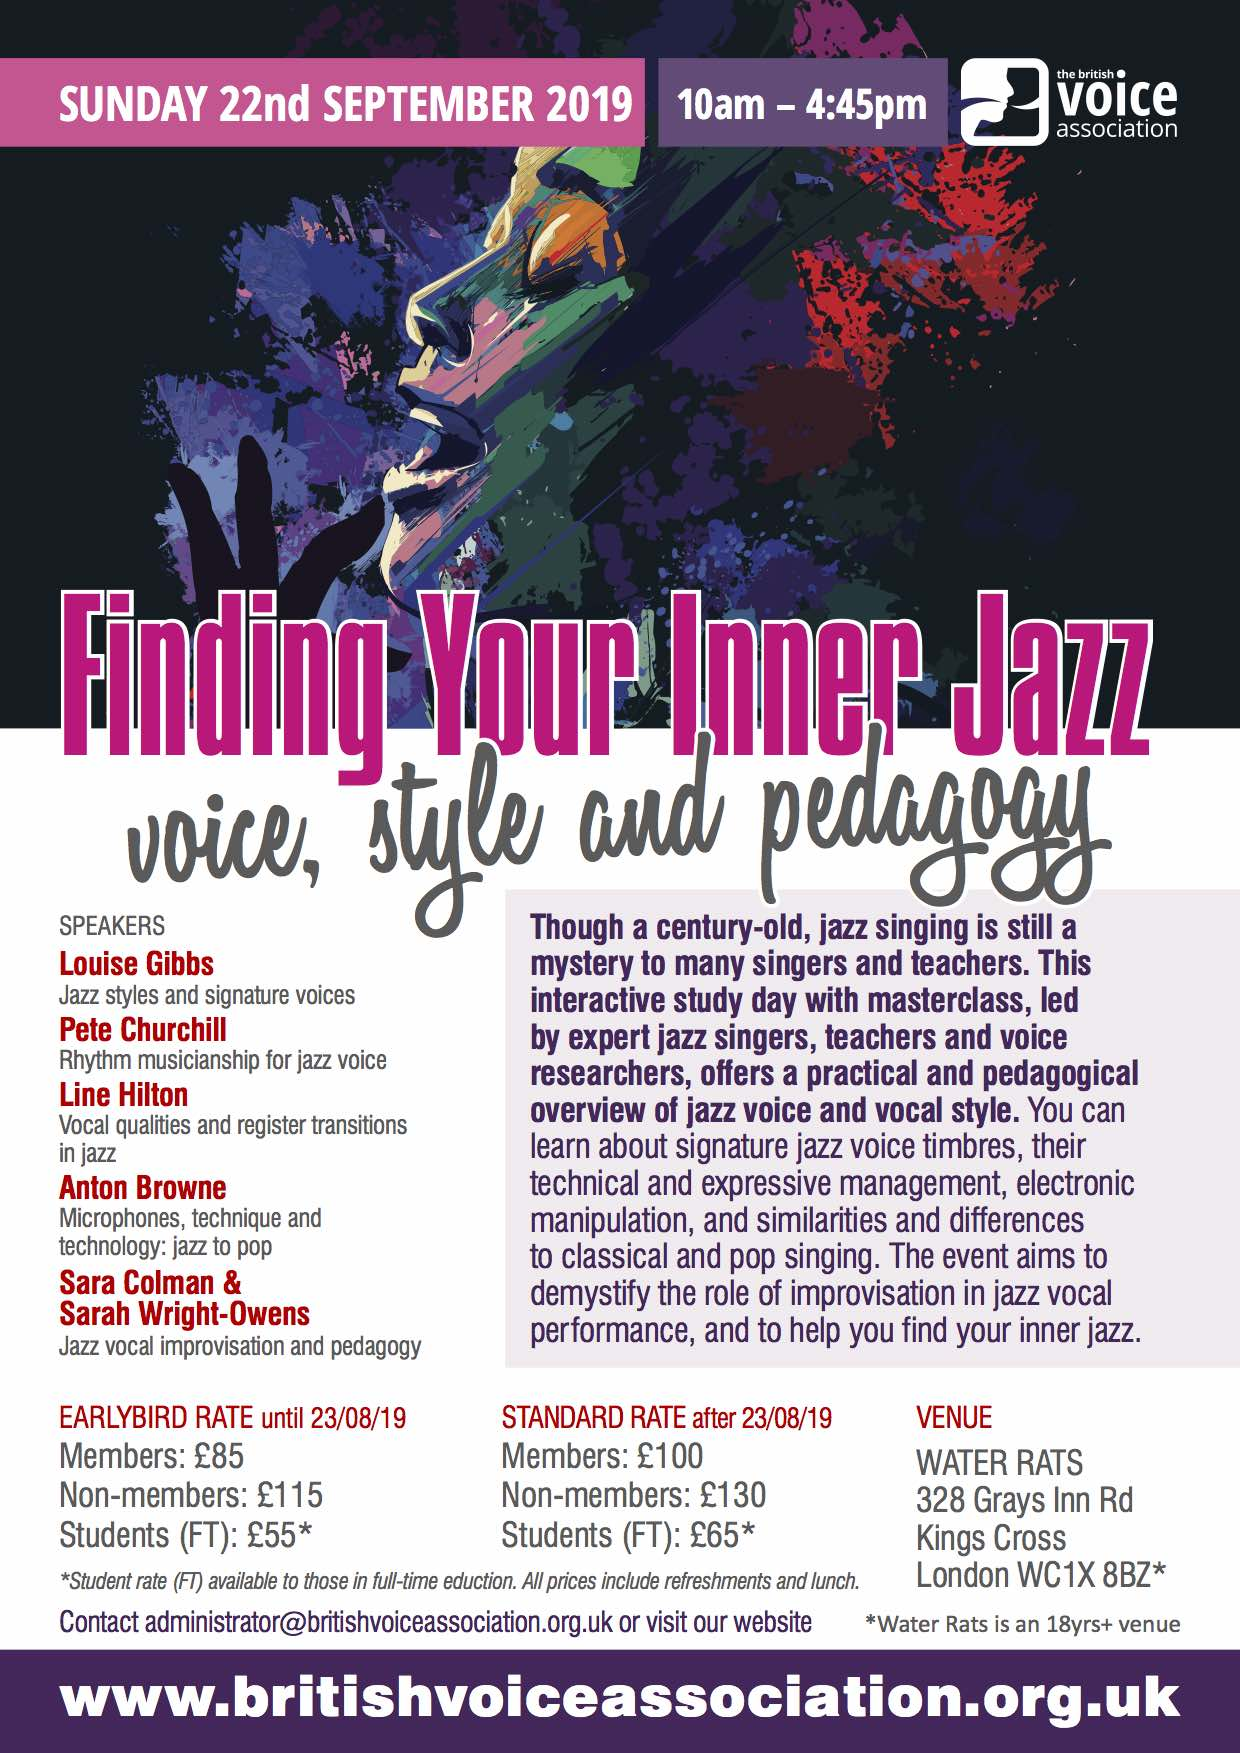 Finding Your Inner Jazz 2019 - event poster.jpg